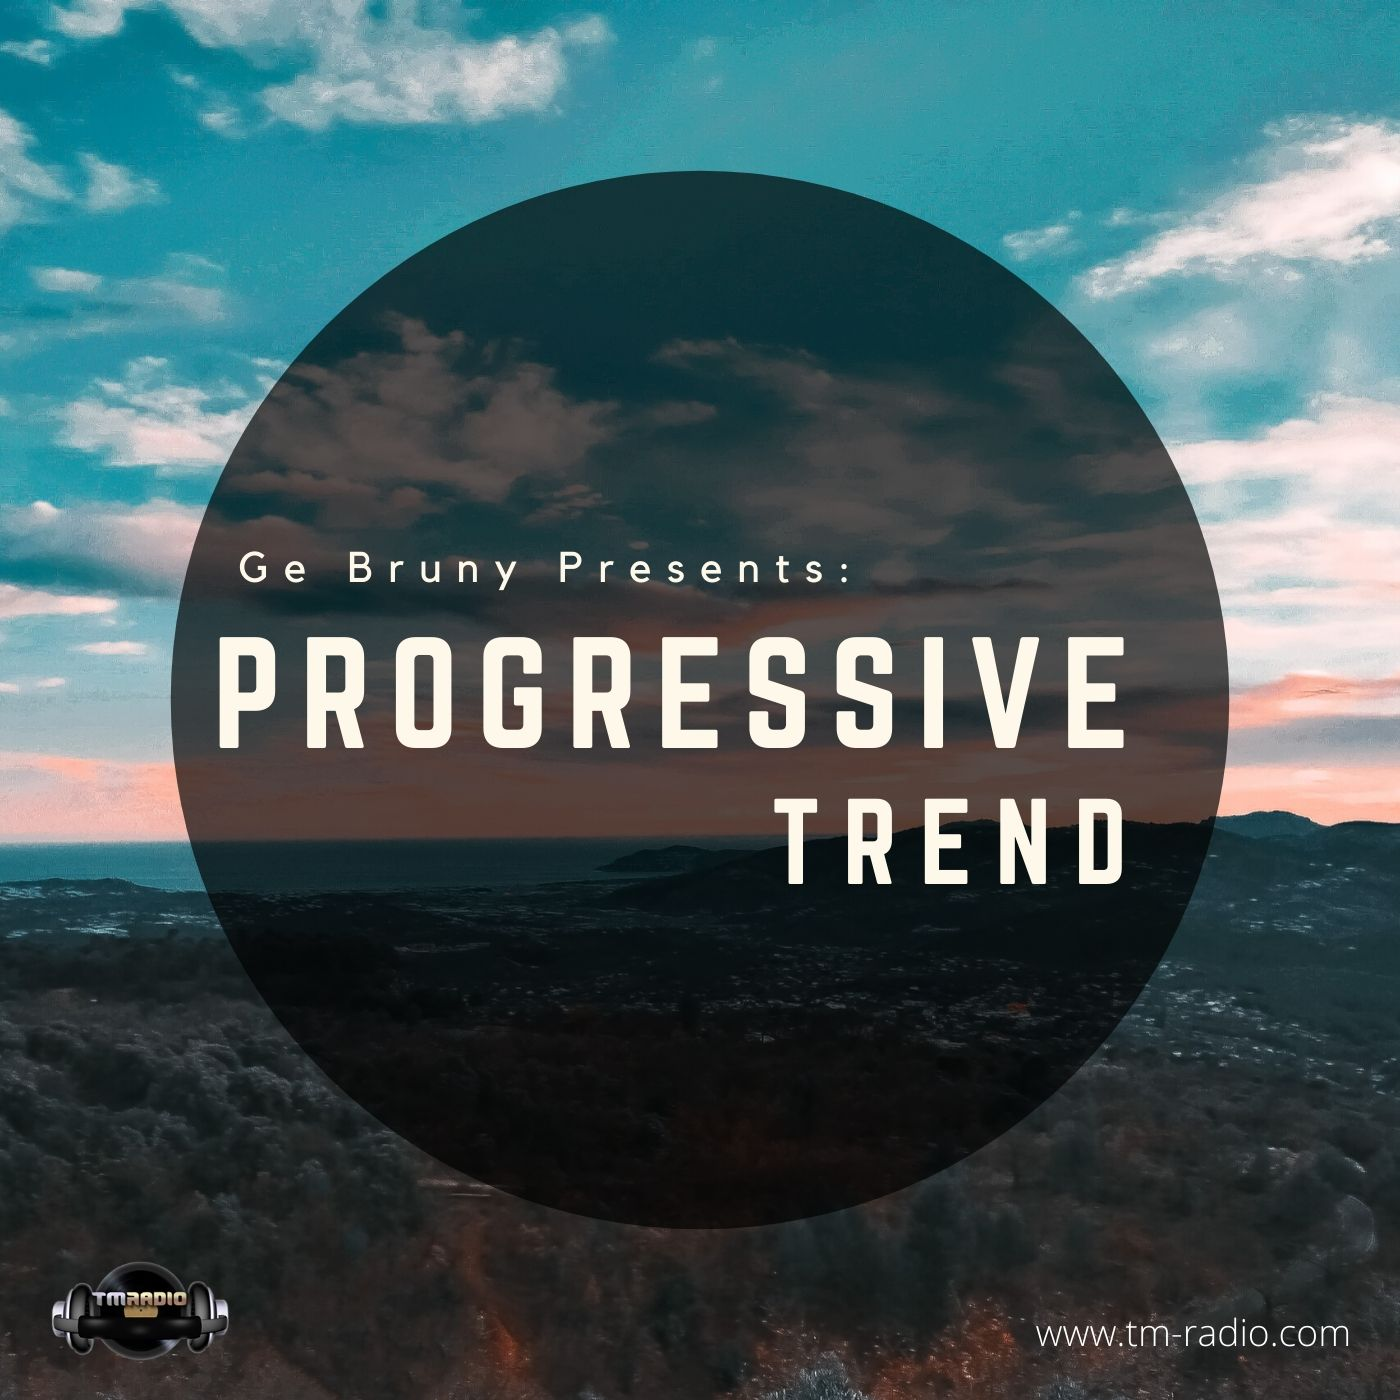 Ge Bruny presents: Progressive Trend :: Episode aired on January 4, 12am banner logo